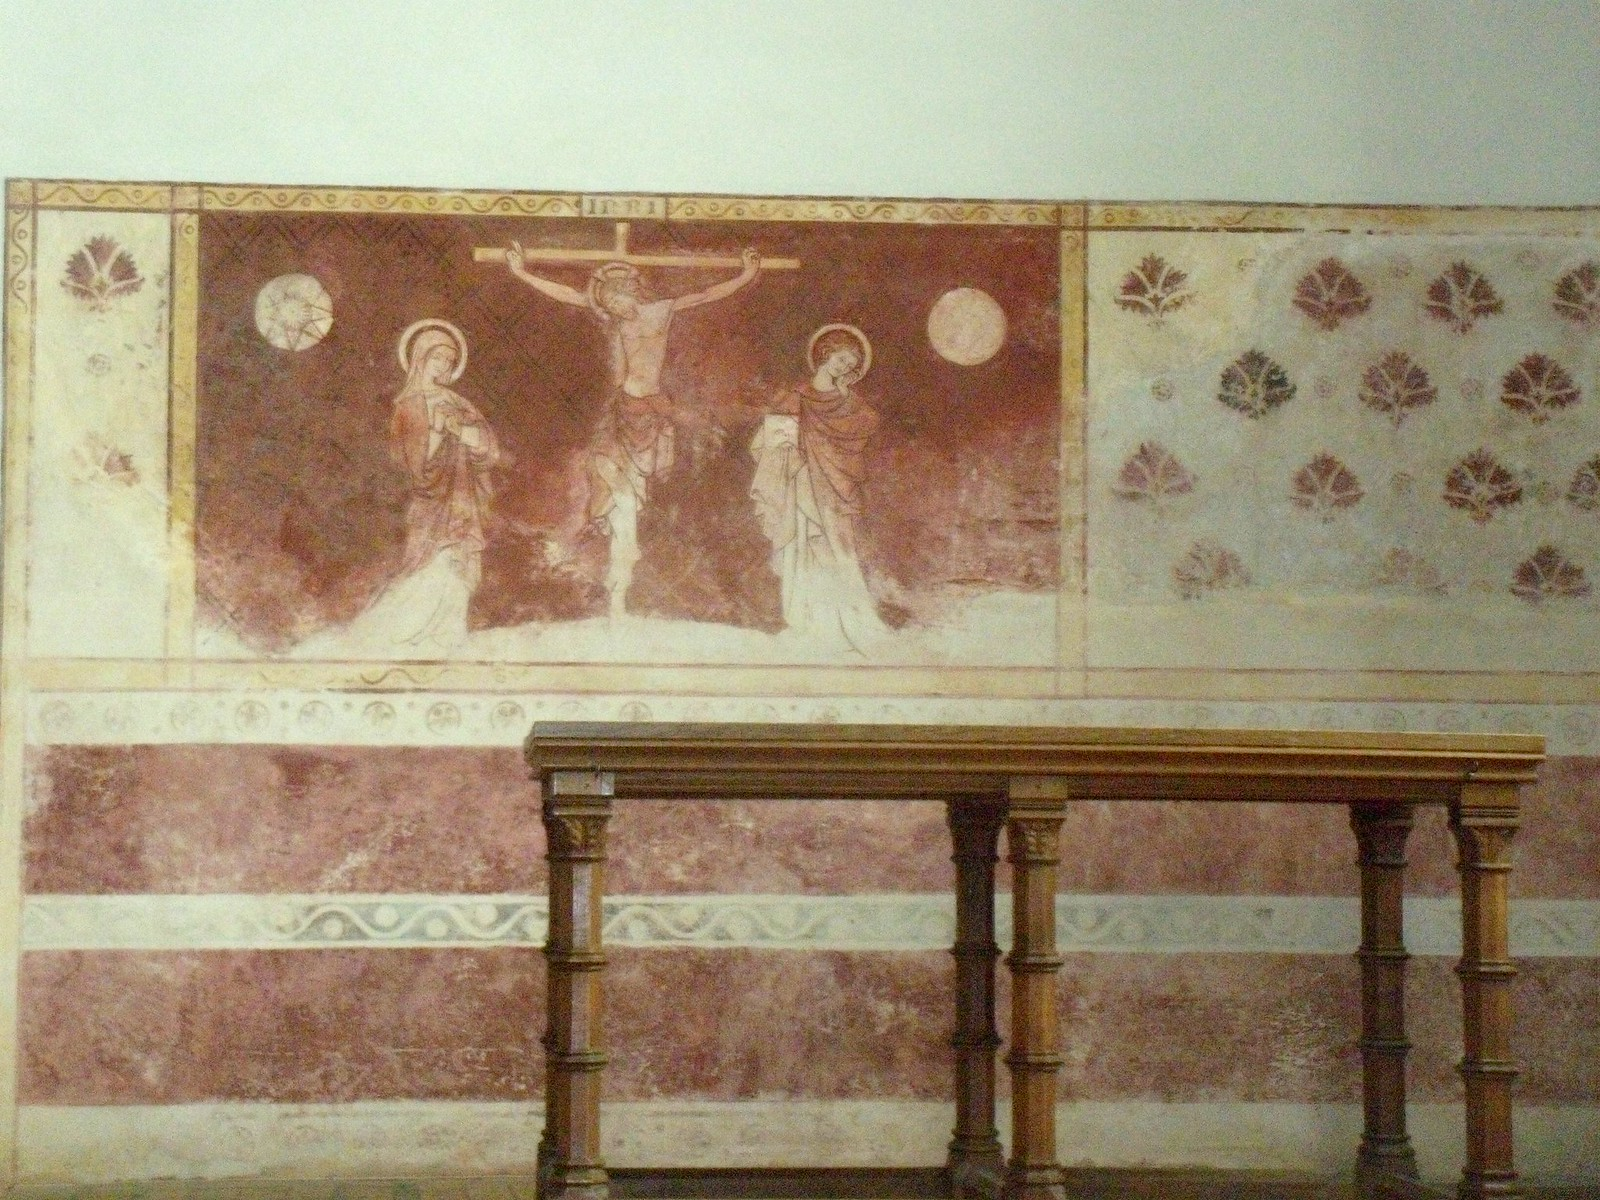 Medieval wall painting (retouched) Dorchester Abbey, Appleford Circular